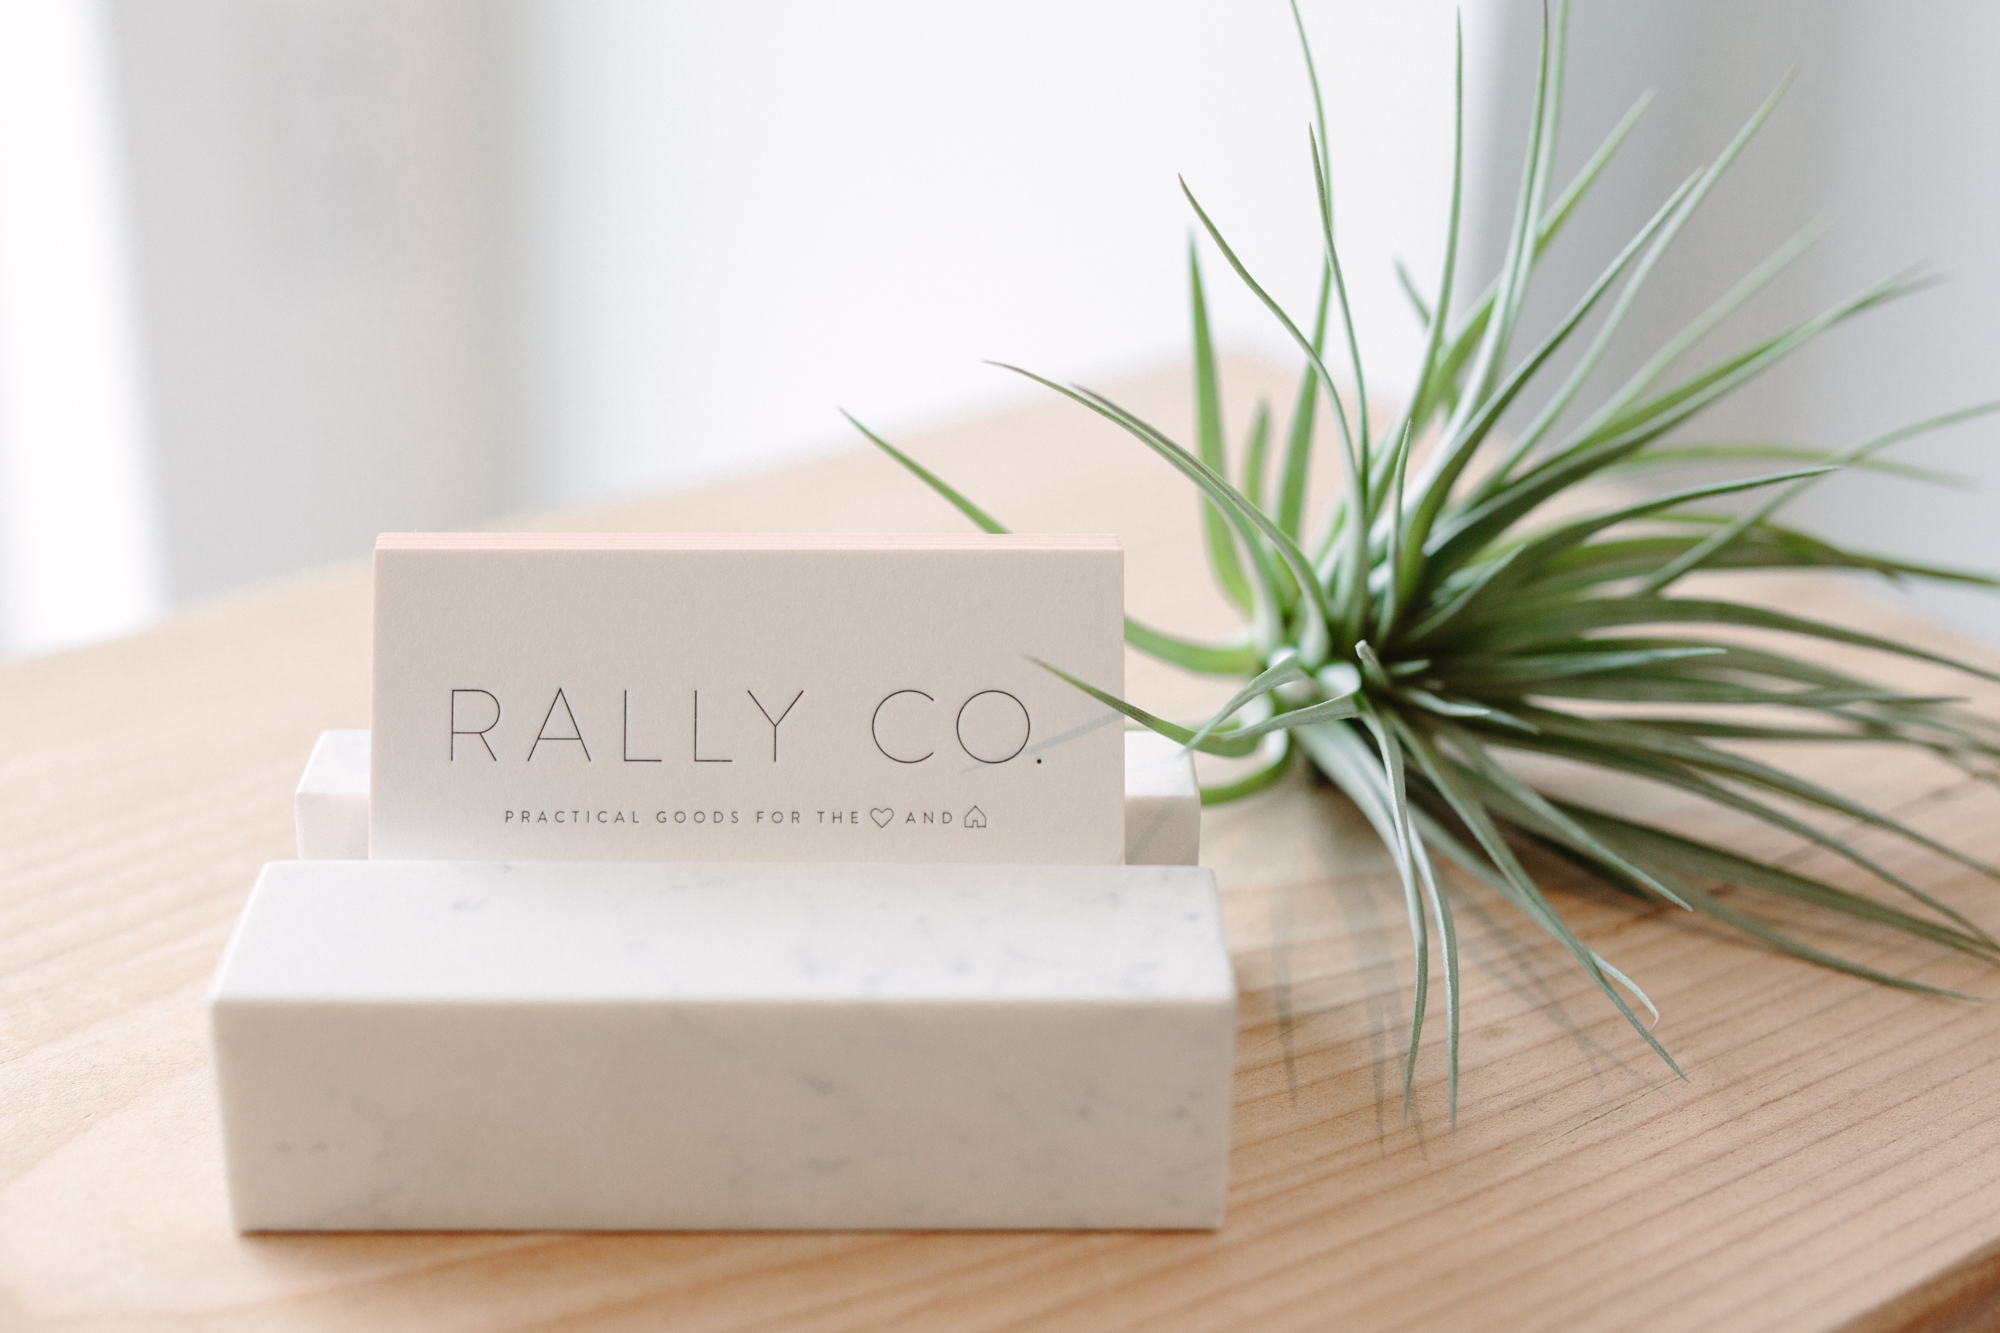 Rally Co card